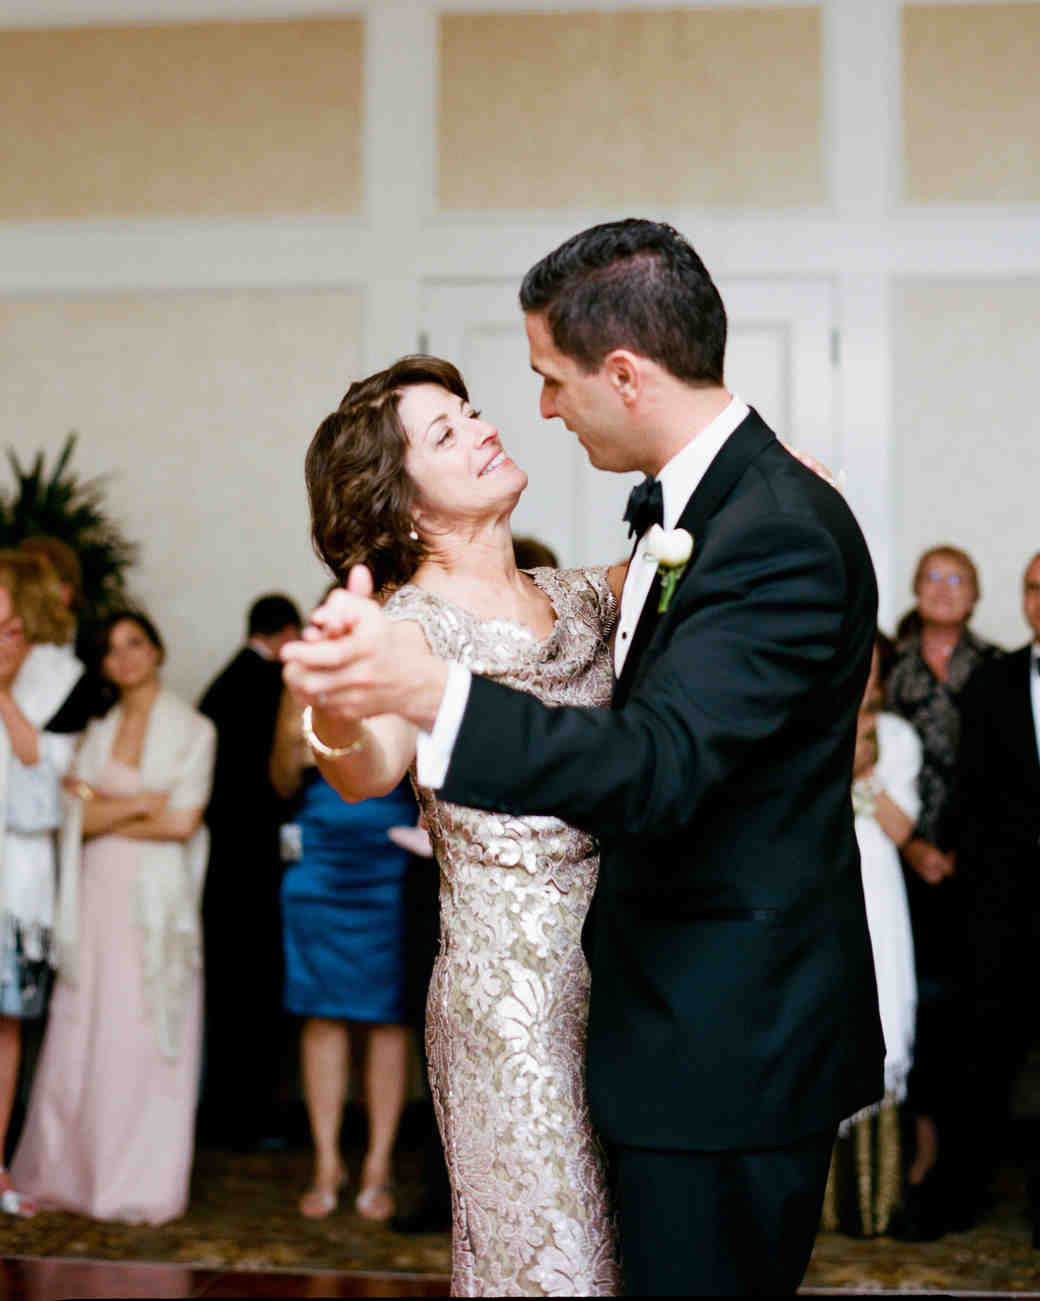 The Best Mother-Son Dance Songs From Weddings | Martha Stewart ...